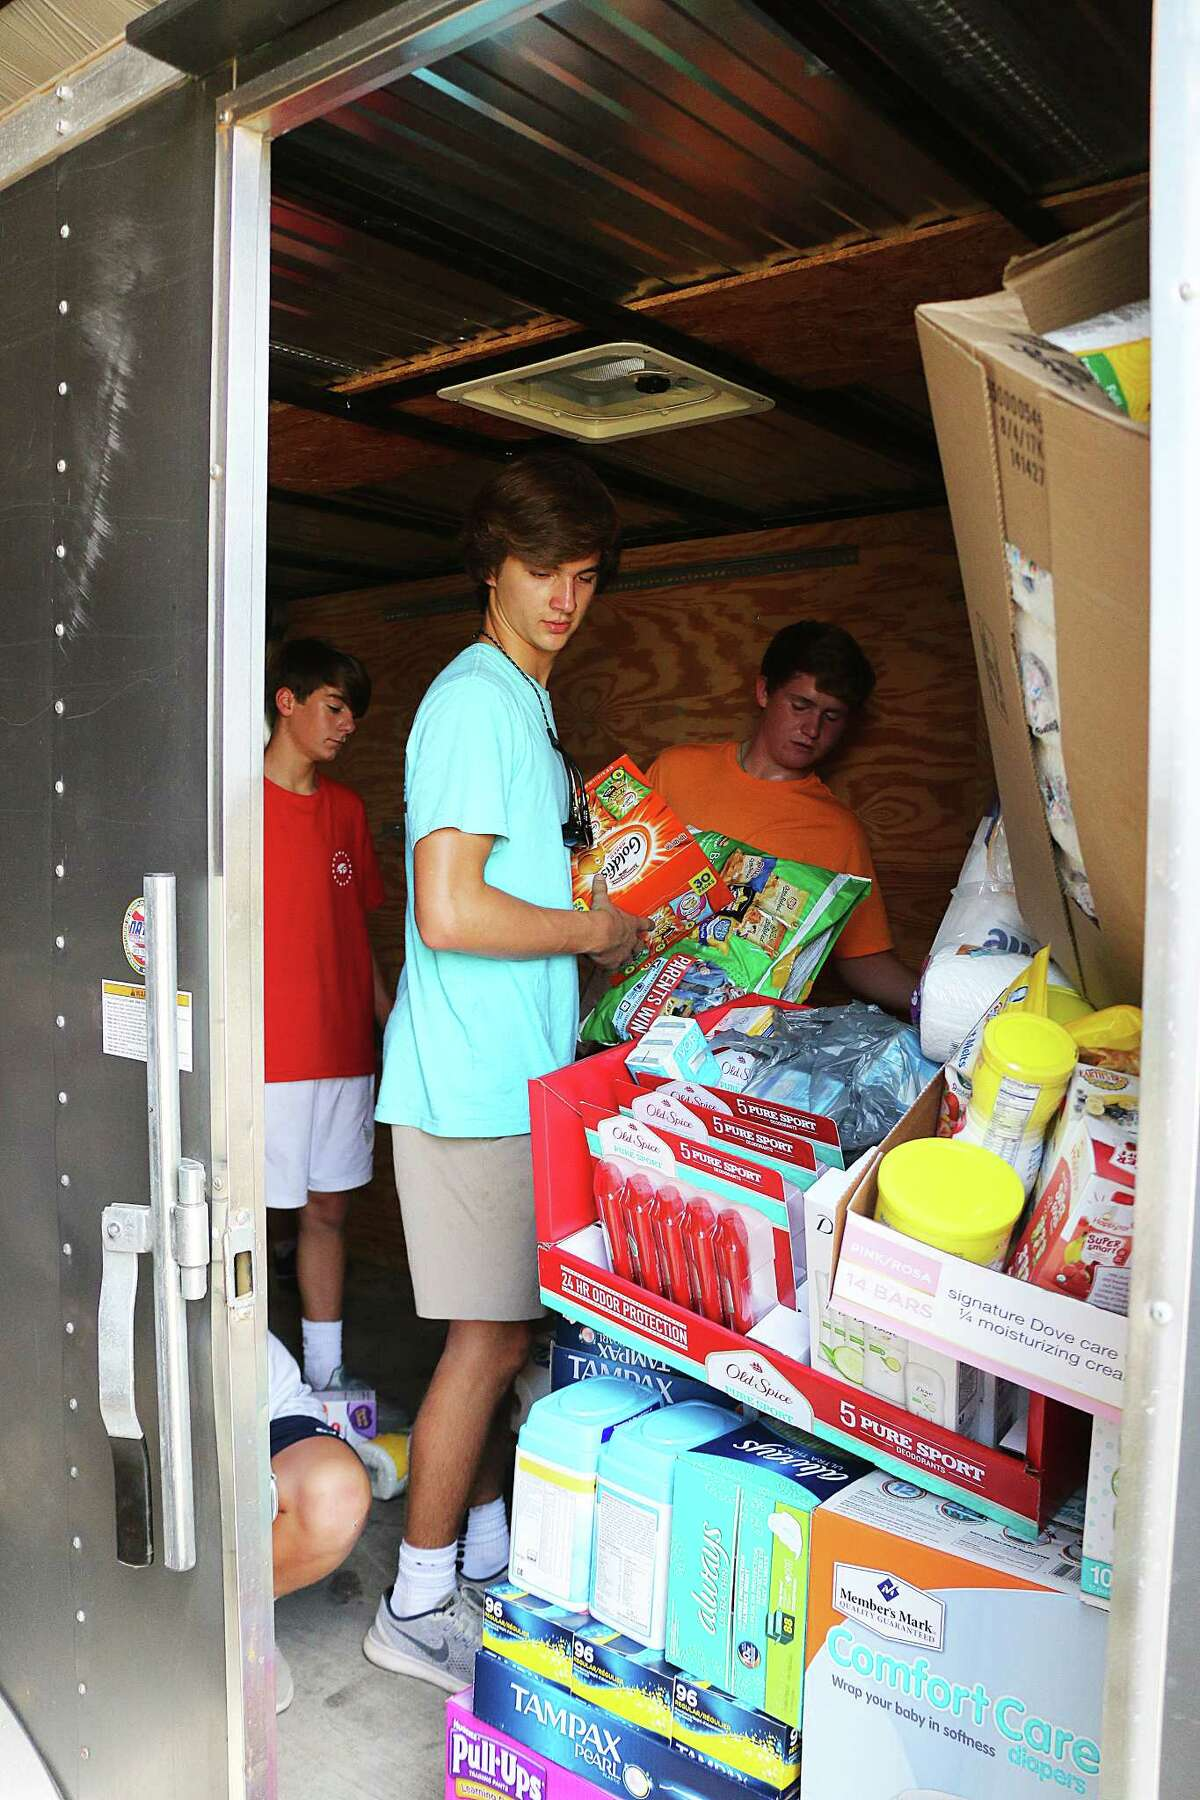 Students from two Fort Worth schools travel to Dayton to deliver supplies for victims of the worst flooding in the history of the county. While most of the water had subsided by the time they had arrived, their donations were delivered to needy residents by Commissioner Leon Wilson.